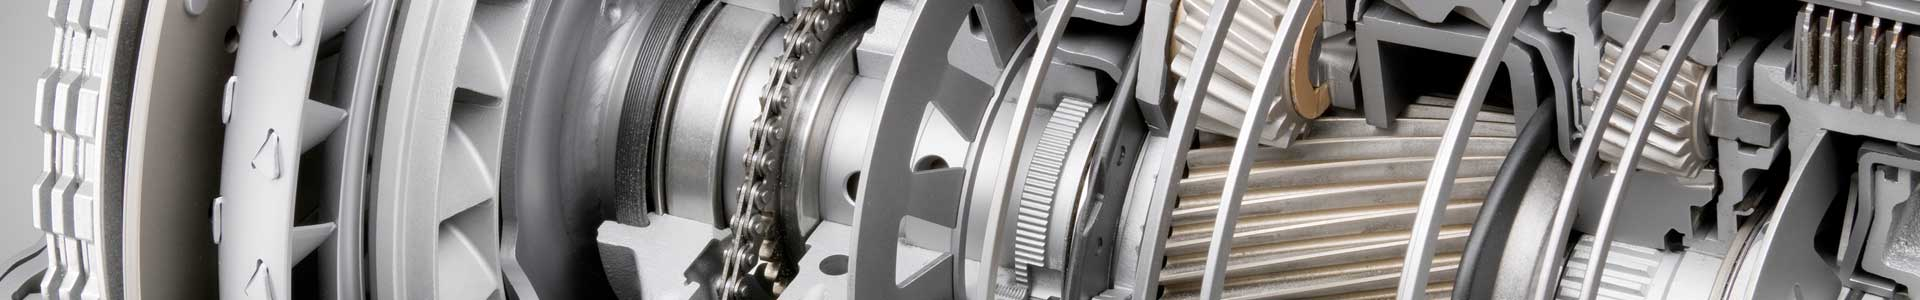 Types-of-Transmissions-in-Automobiles